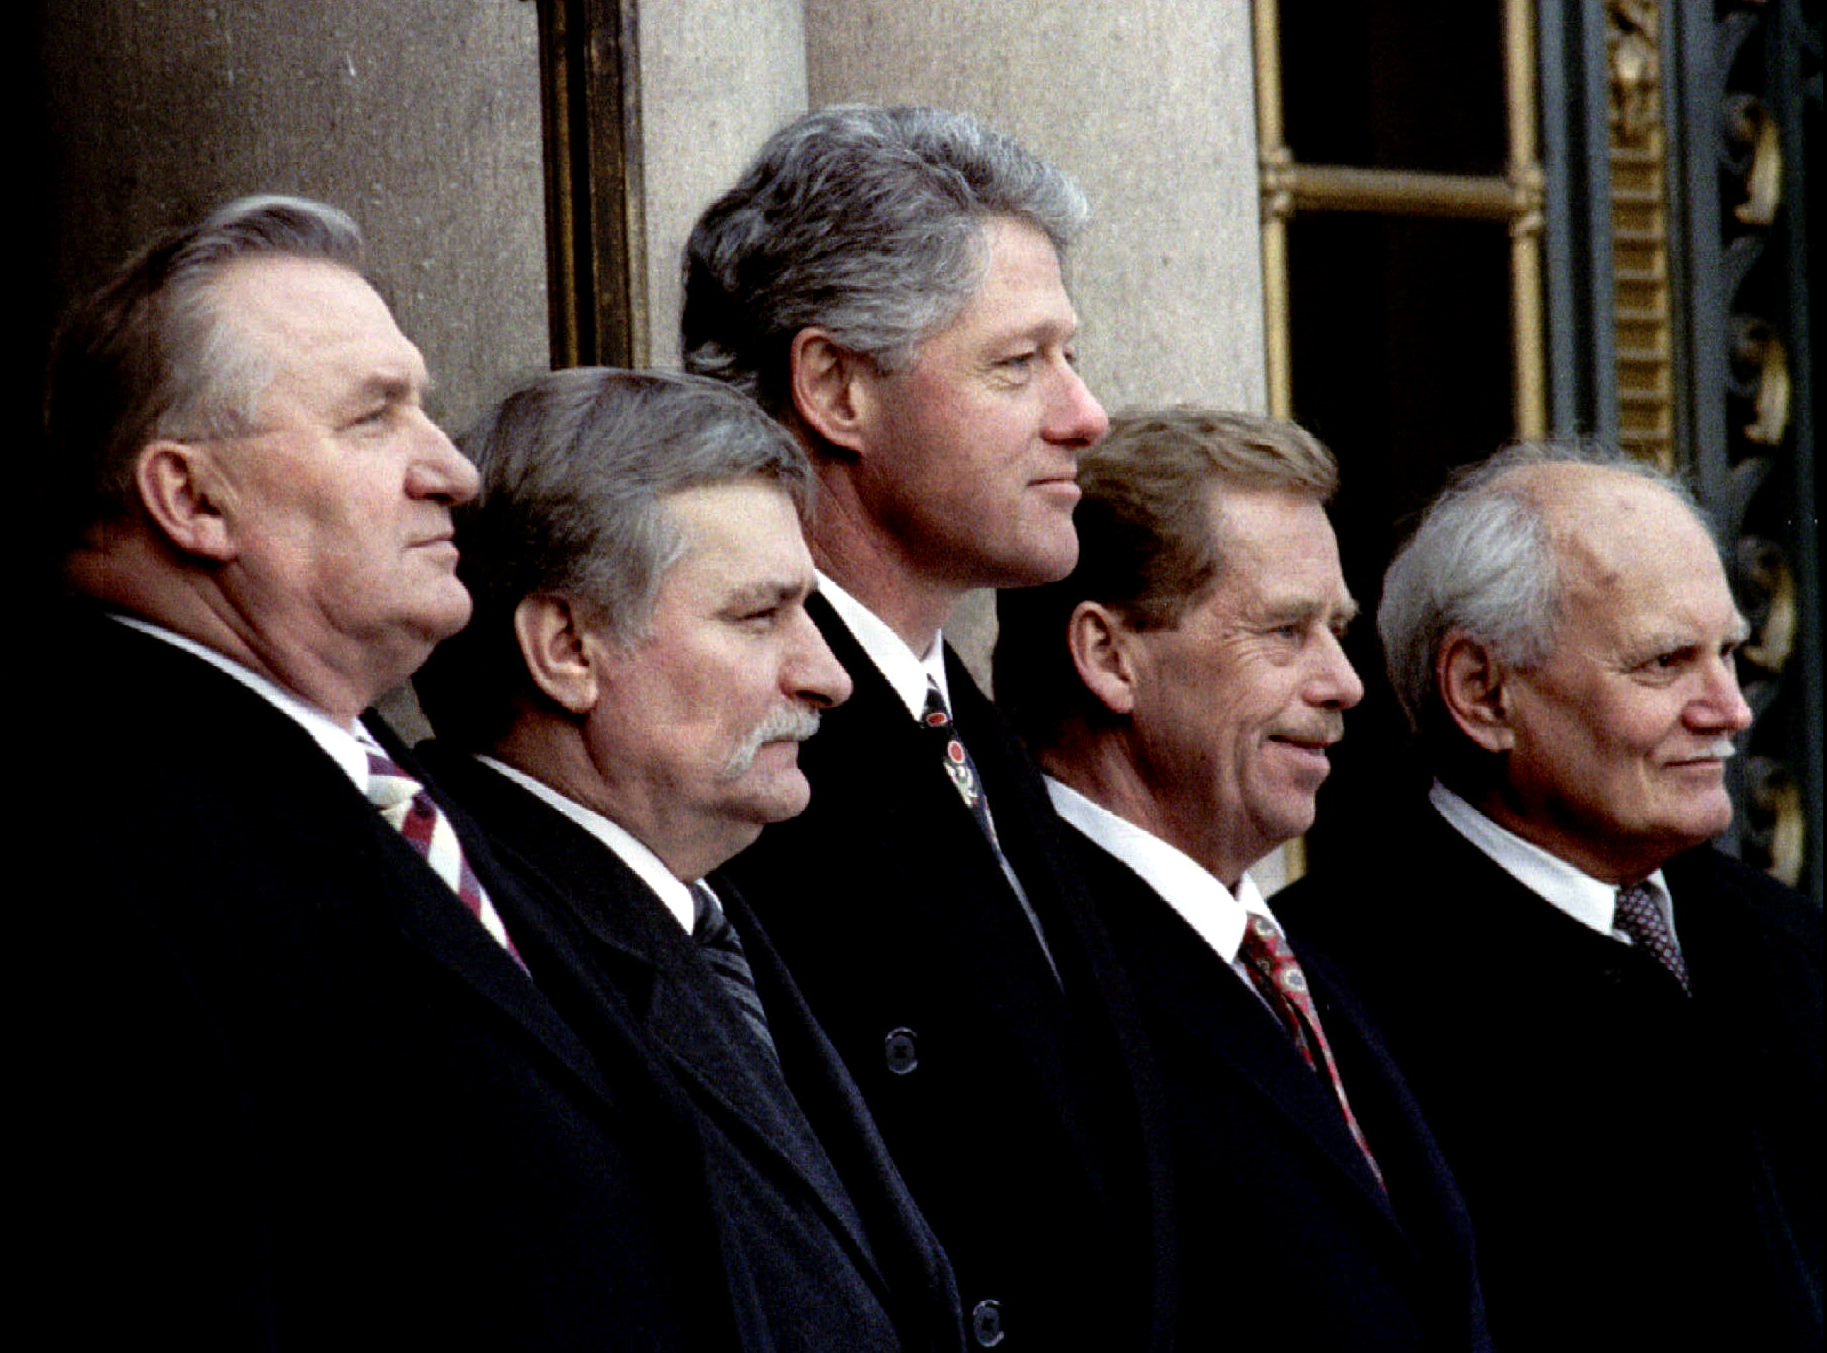 Clinton stands with Visegrad group leaders